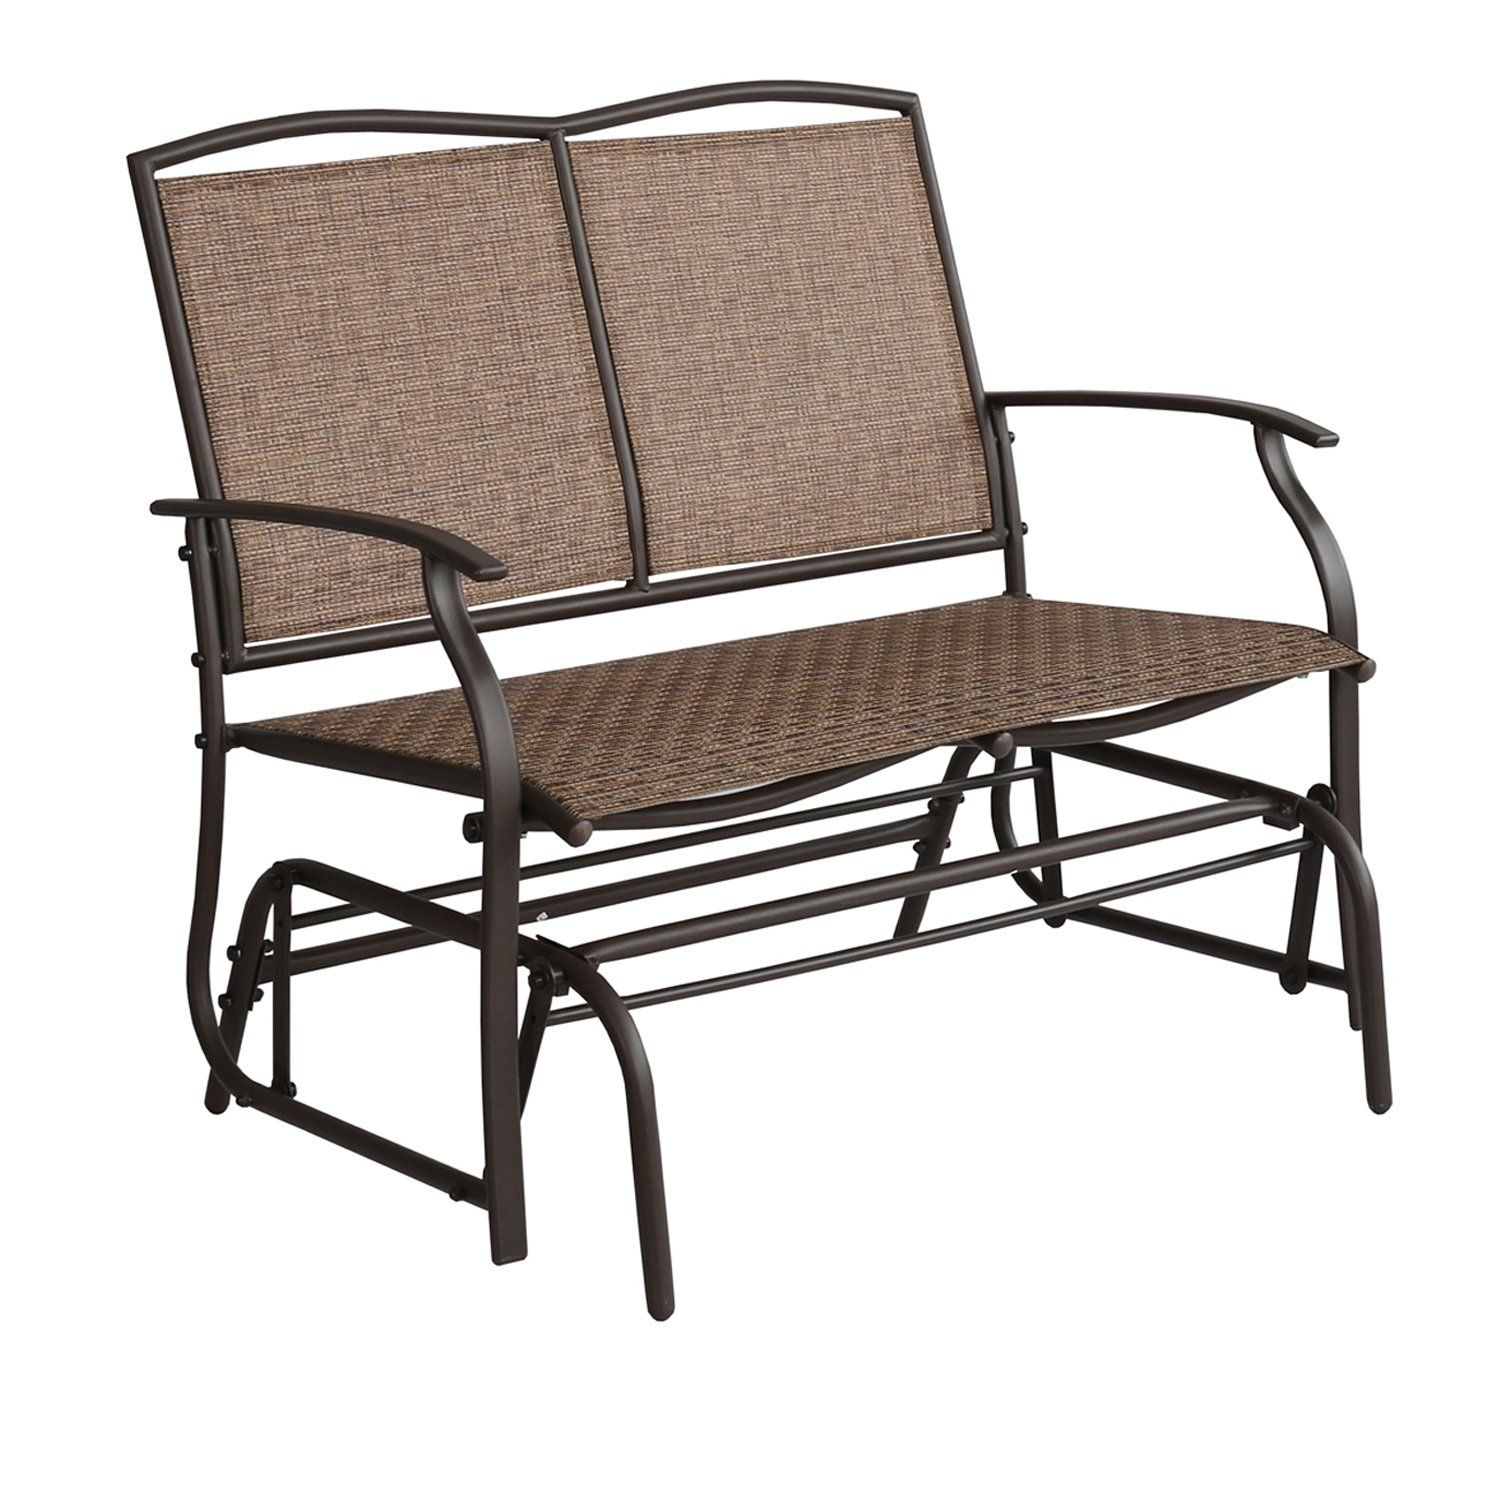 Patio Tree Patio Swing Glider Bench For 2 Person All In Outdoor Patio Swing Glider Benches (View 25 of 25)